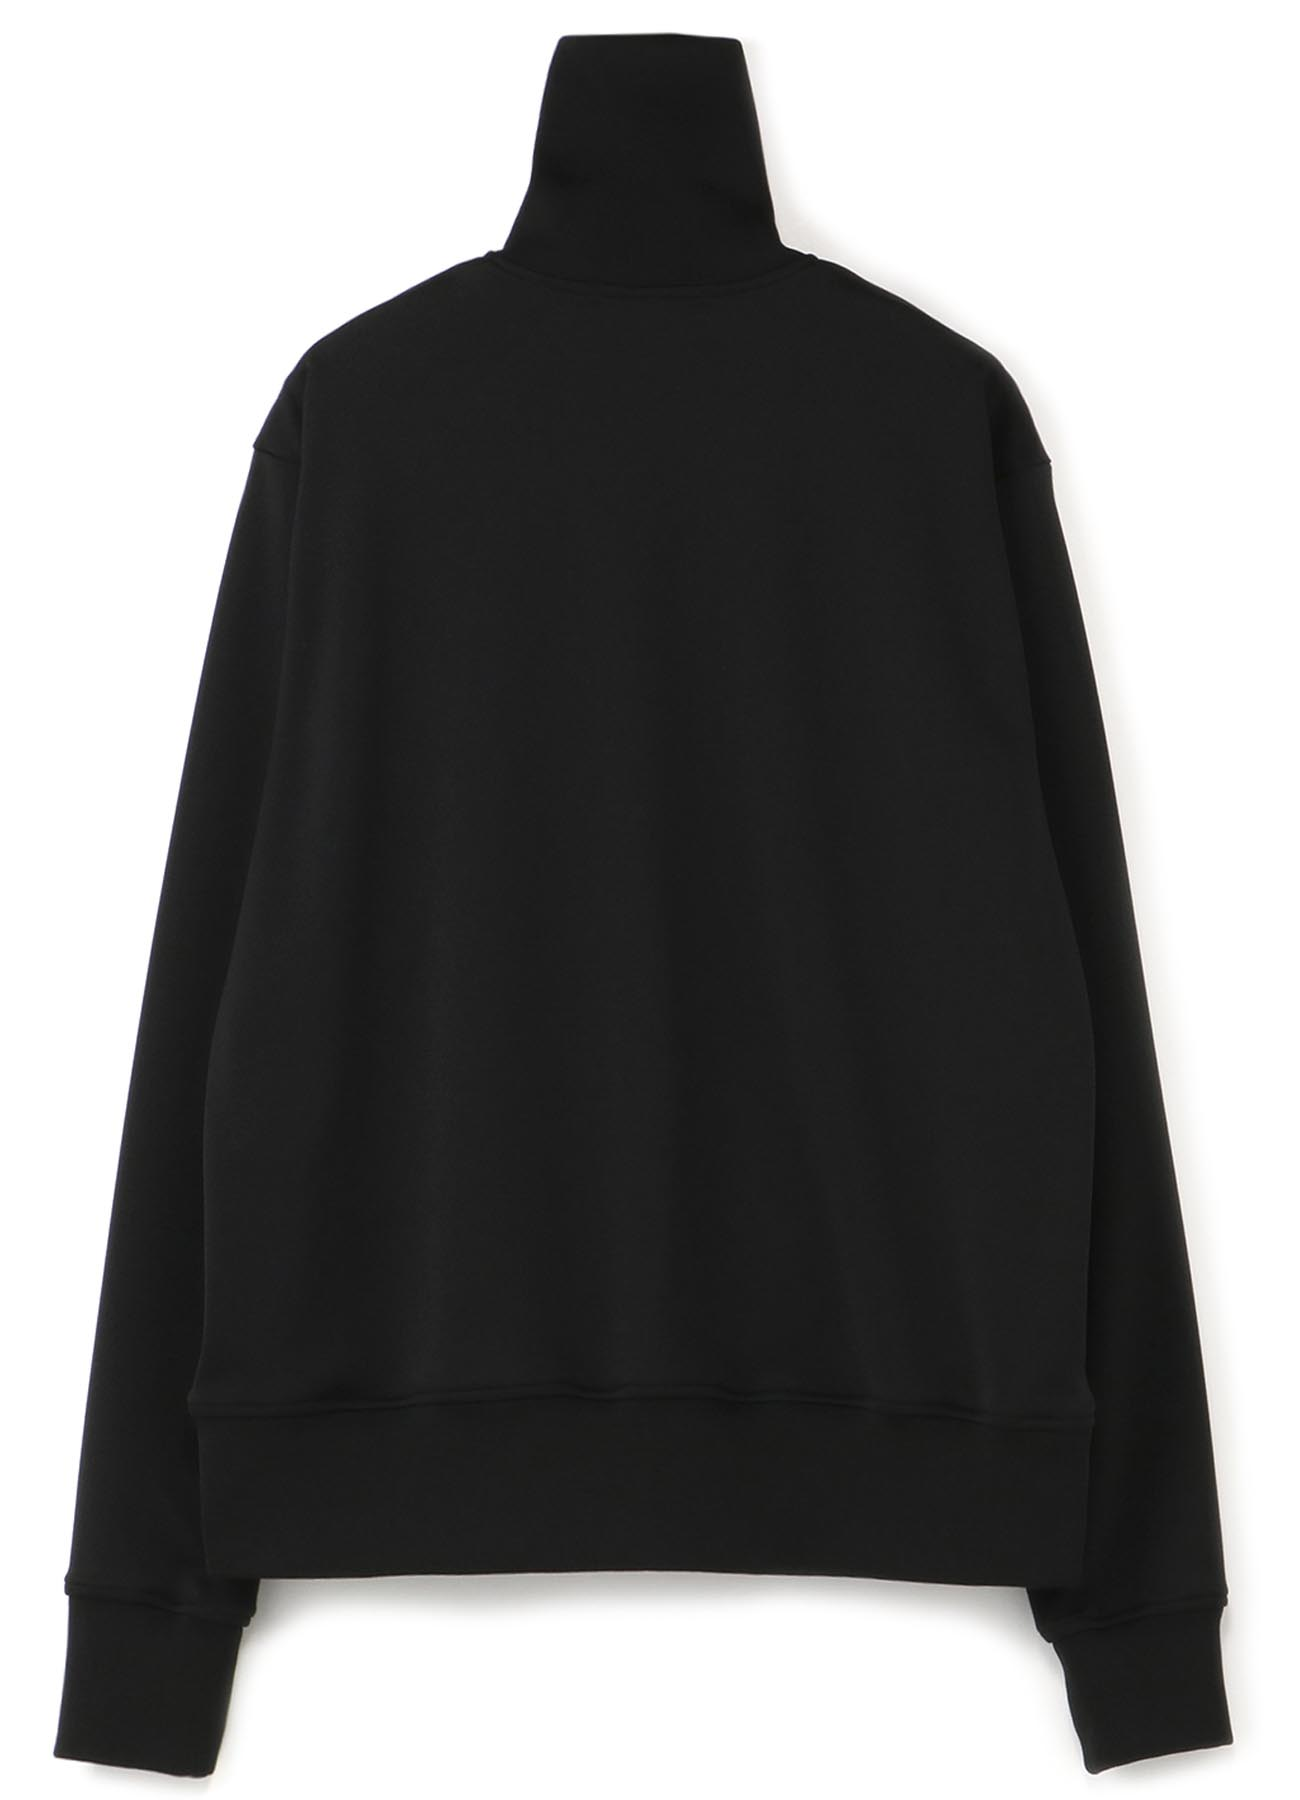 FRED PERRY collaboration Jersey Rib Track Jacket